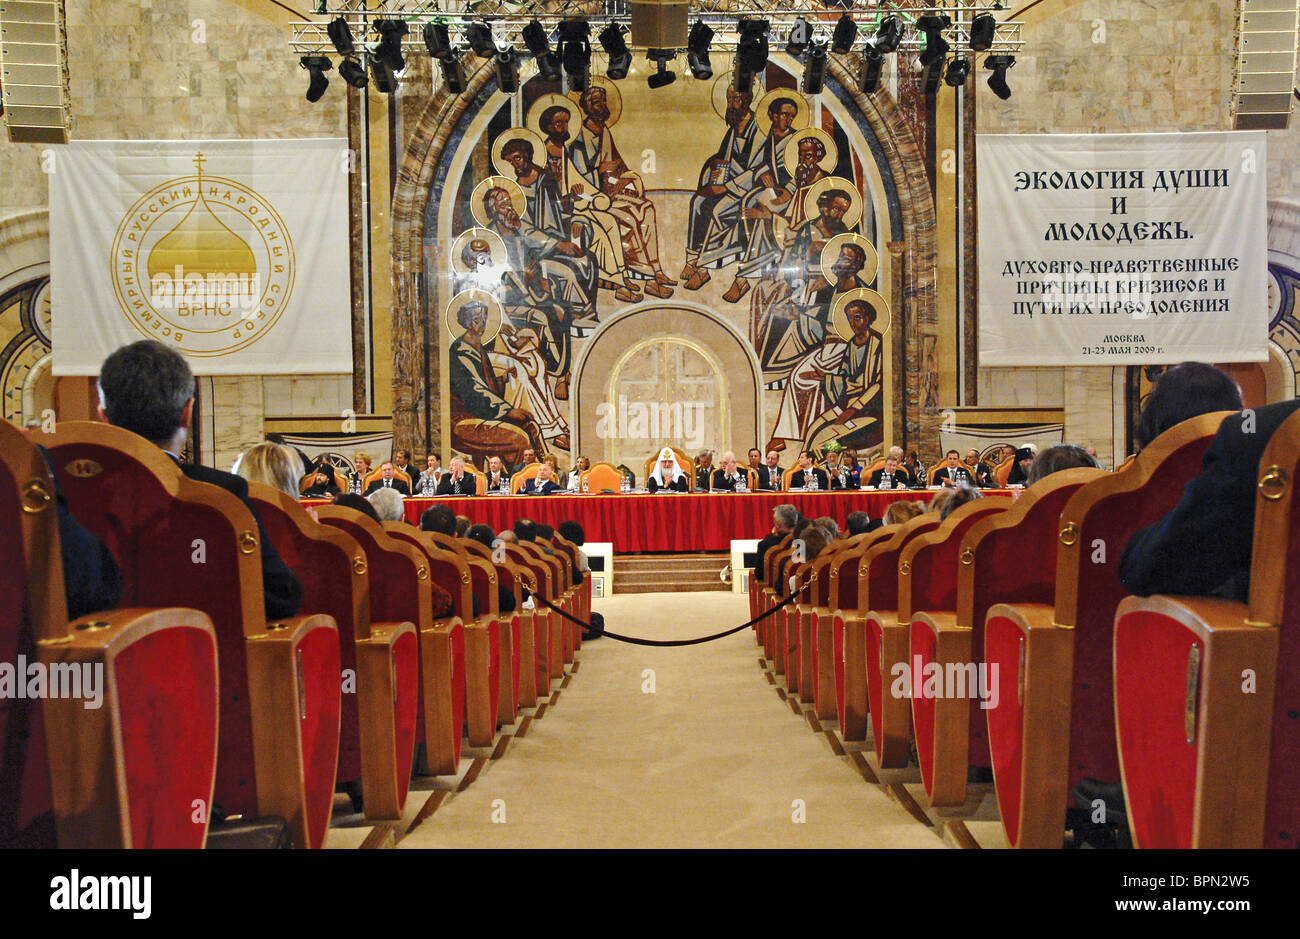 13th World Russian People's Council - Stock Image